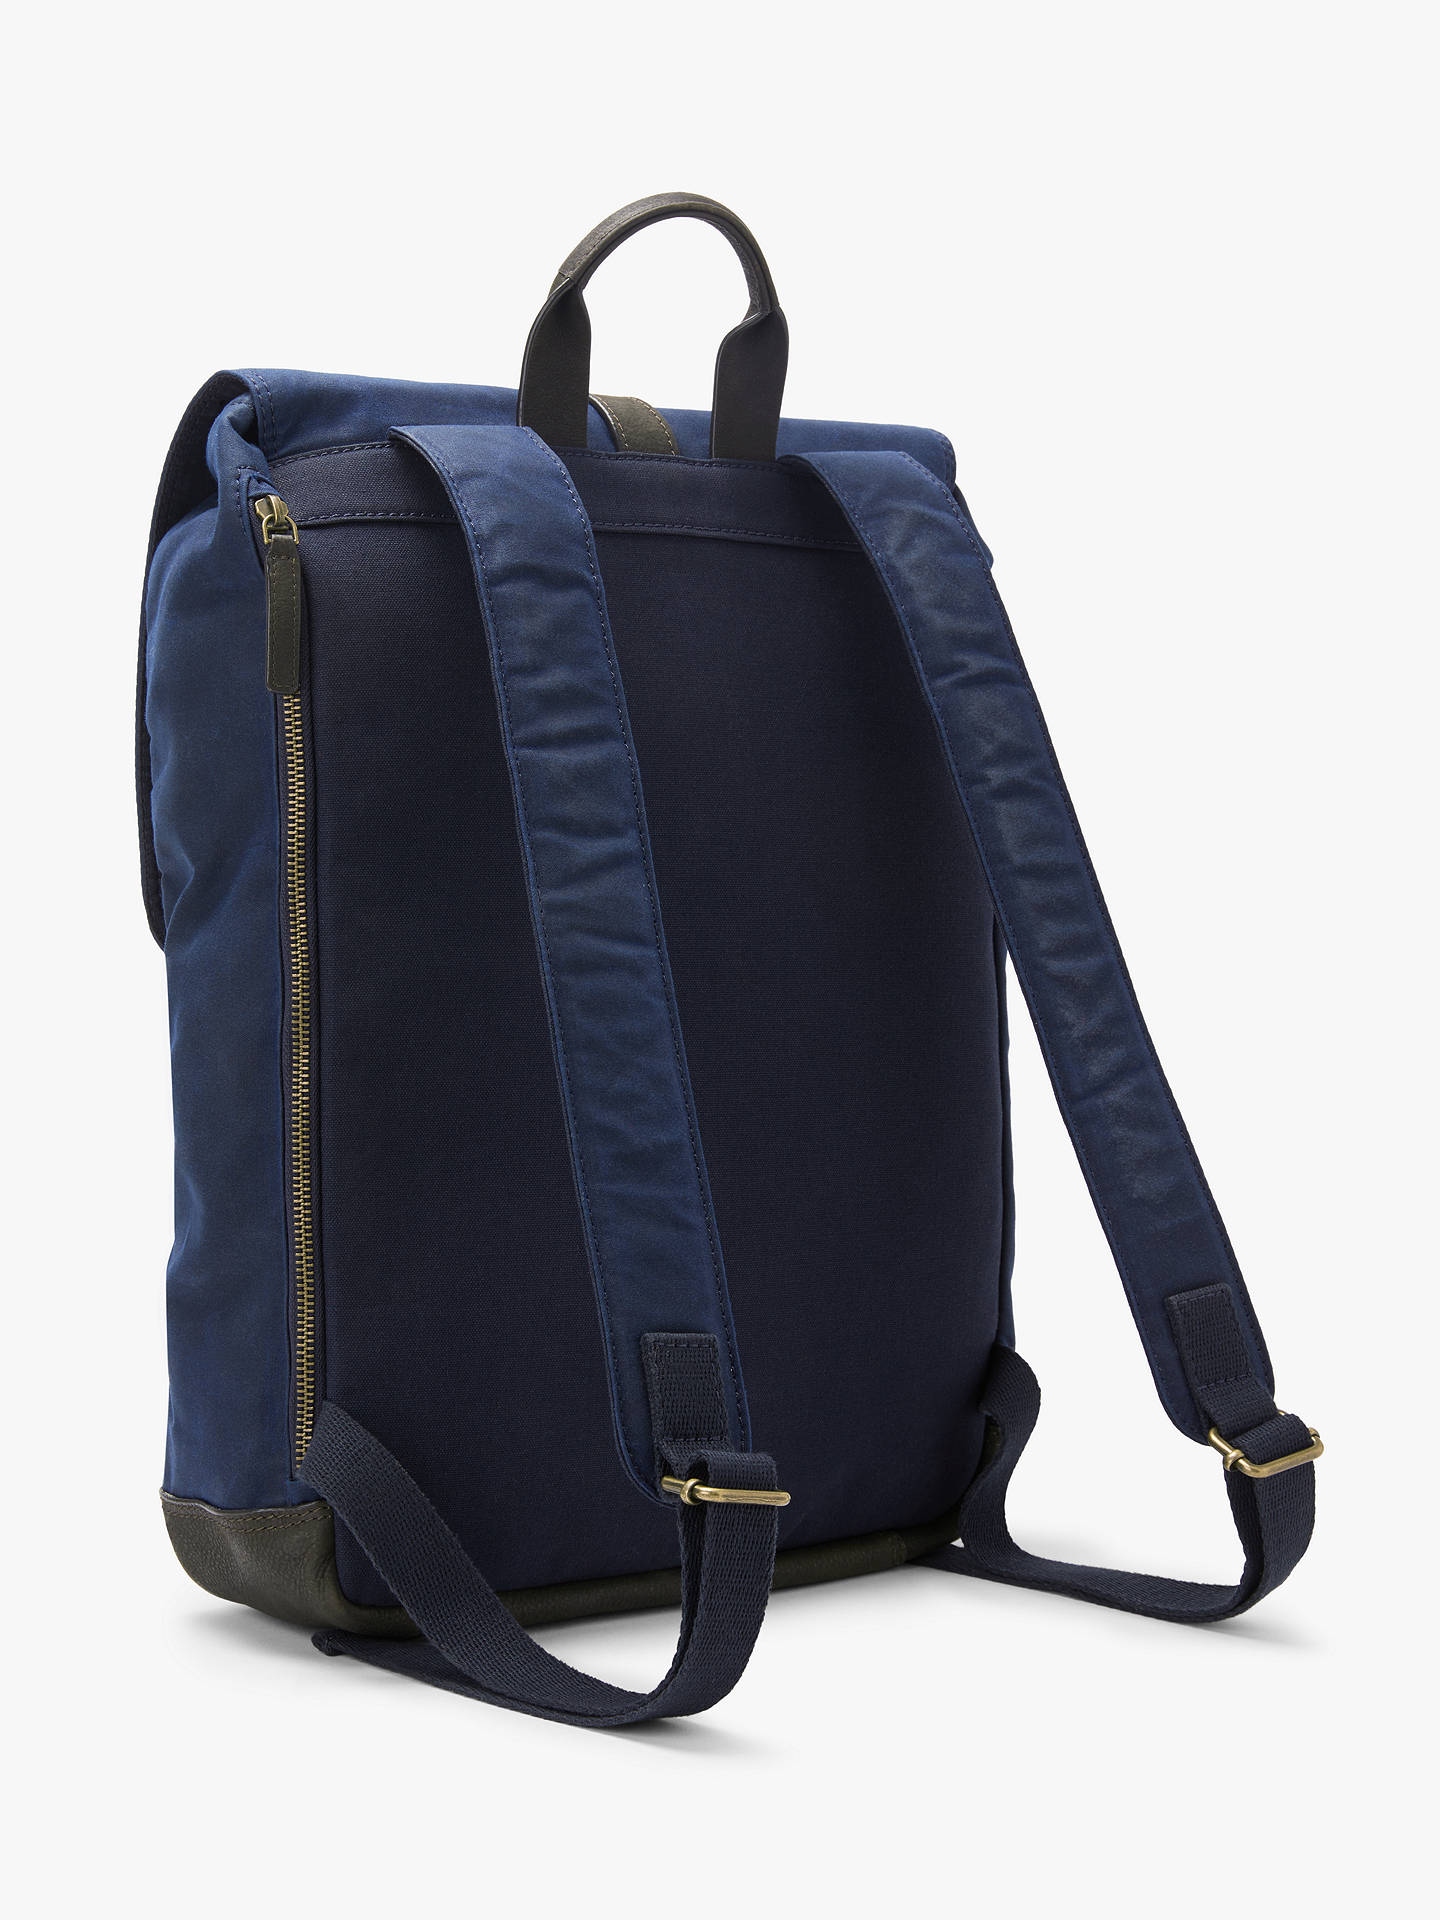 a21f4311f9af John Lewis & Partners Keswick Waxed Cotton Backpack, Navy